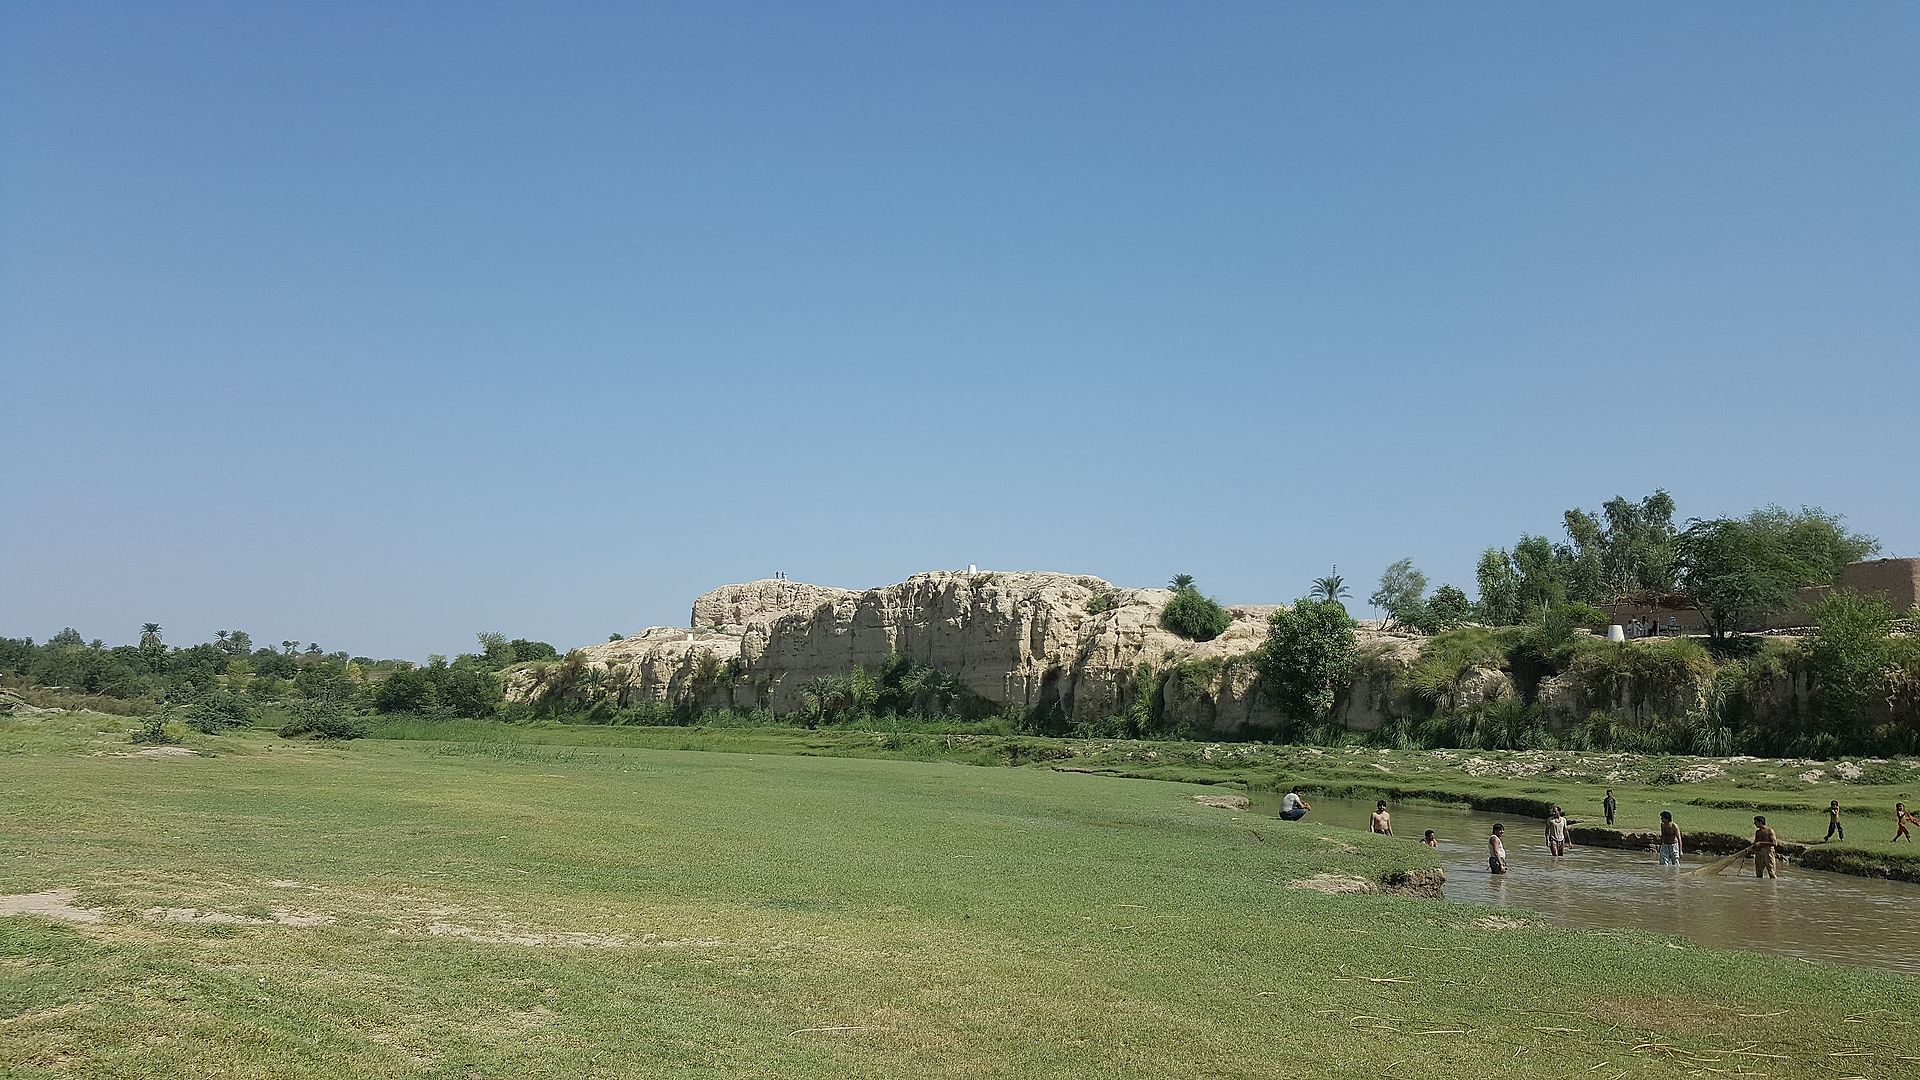 Akra_Mound_from_canal_side (1).jpg